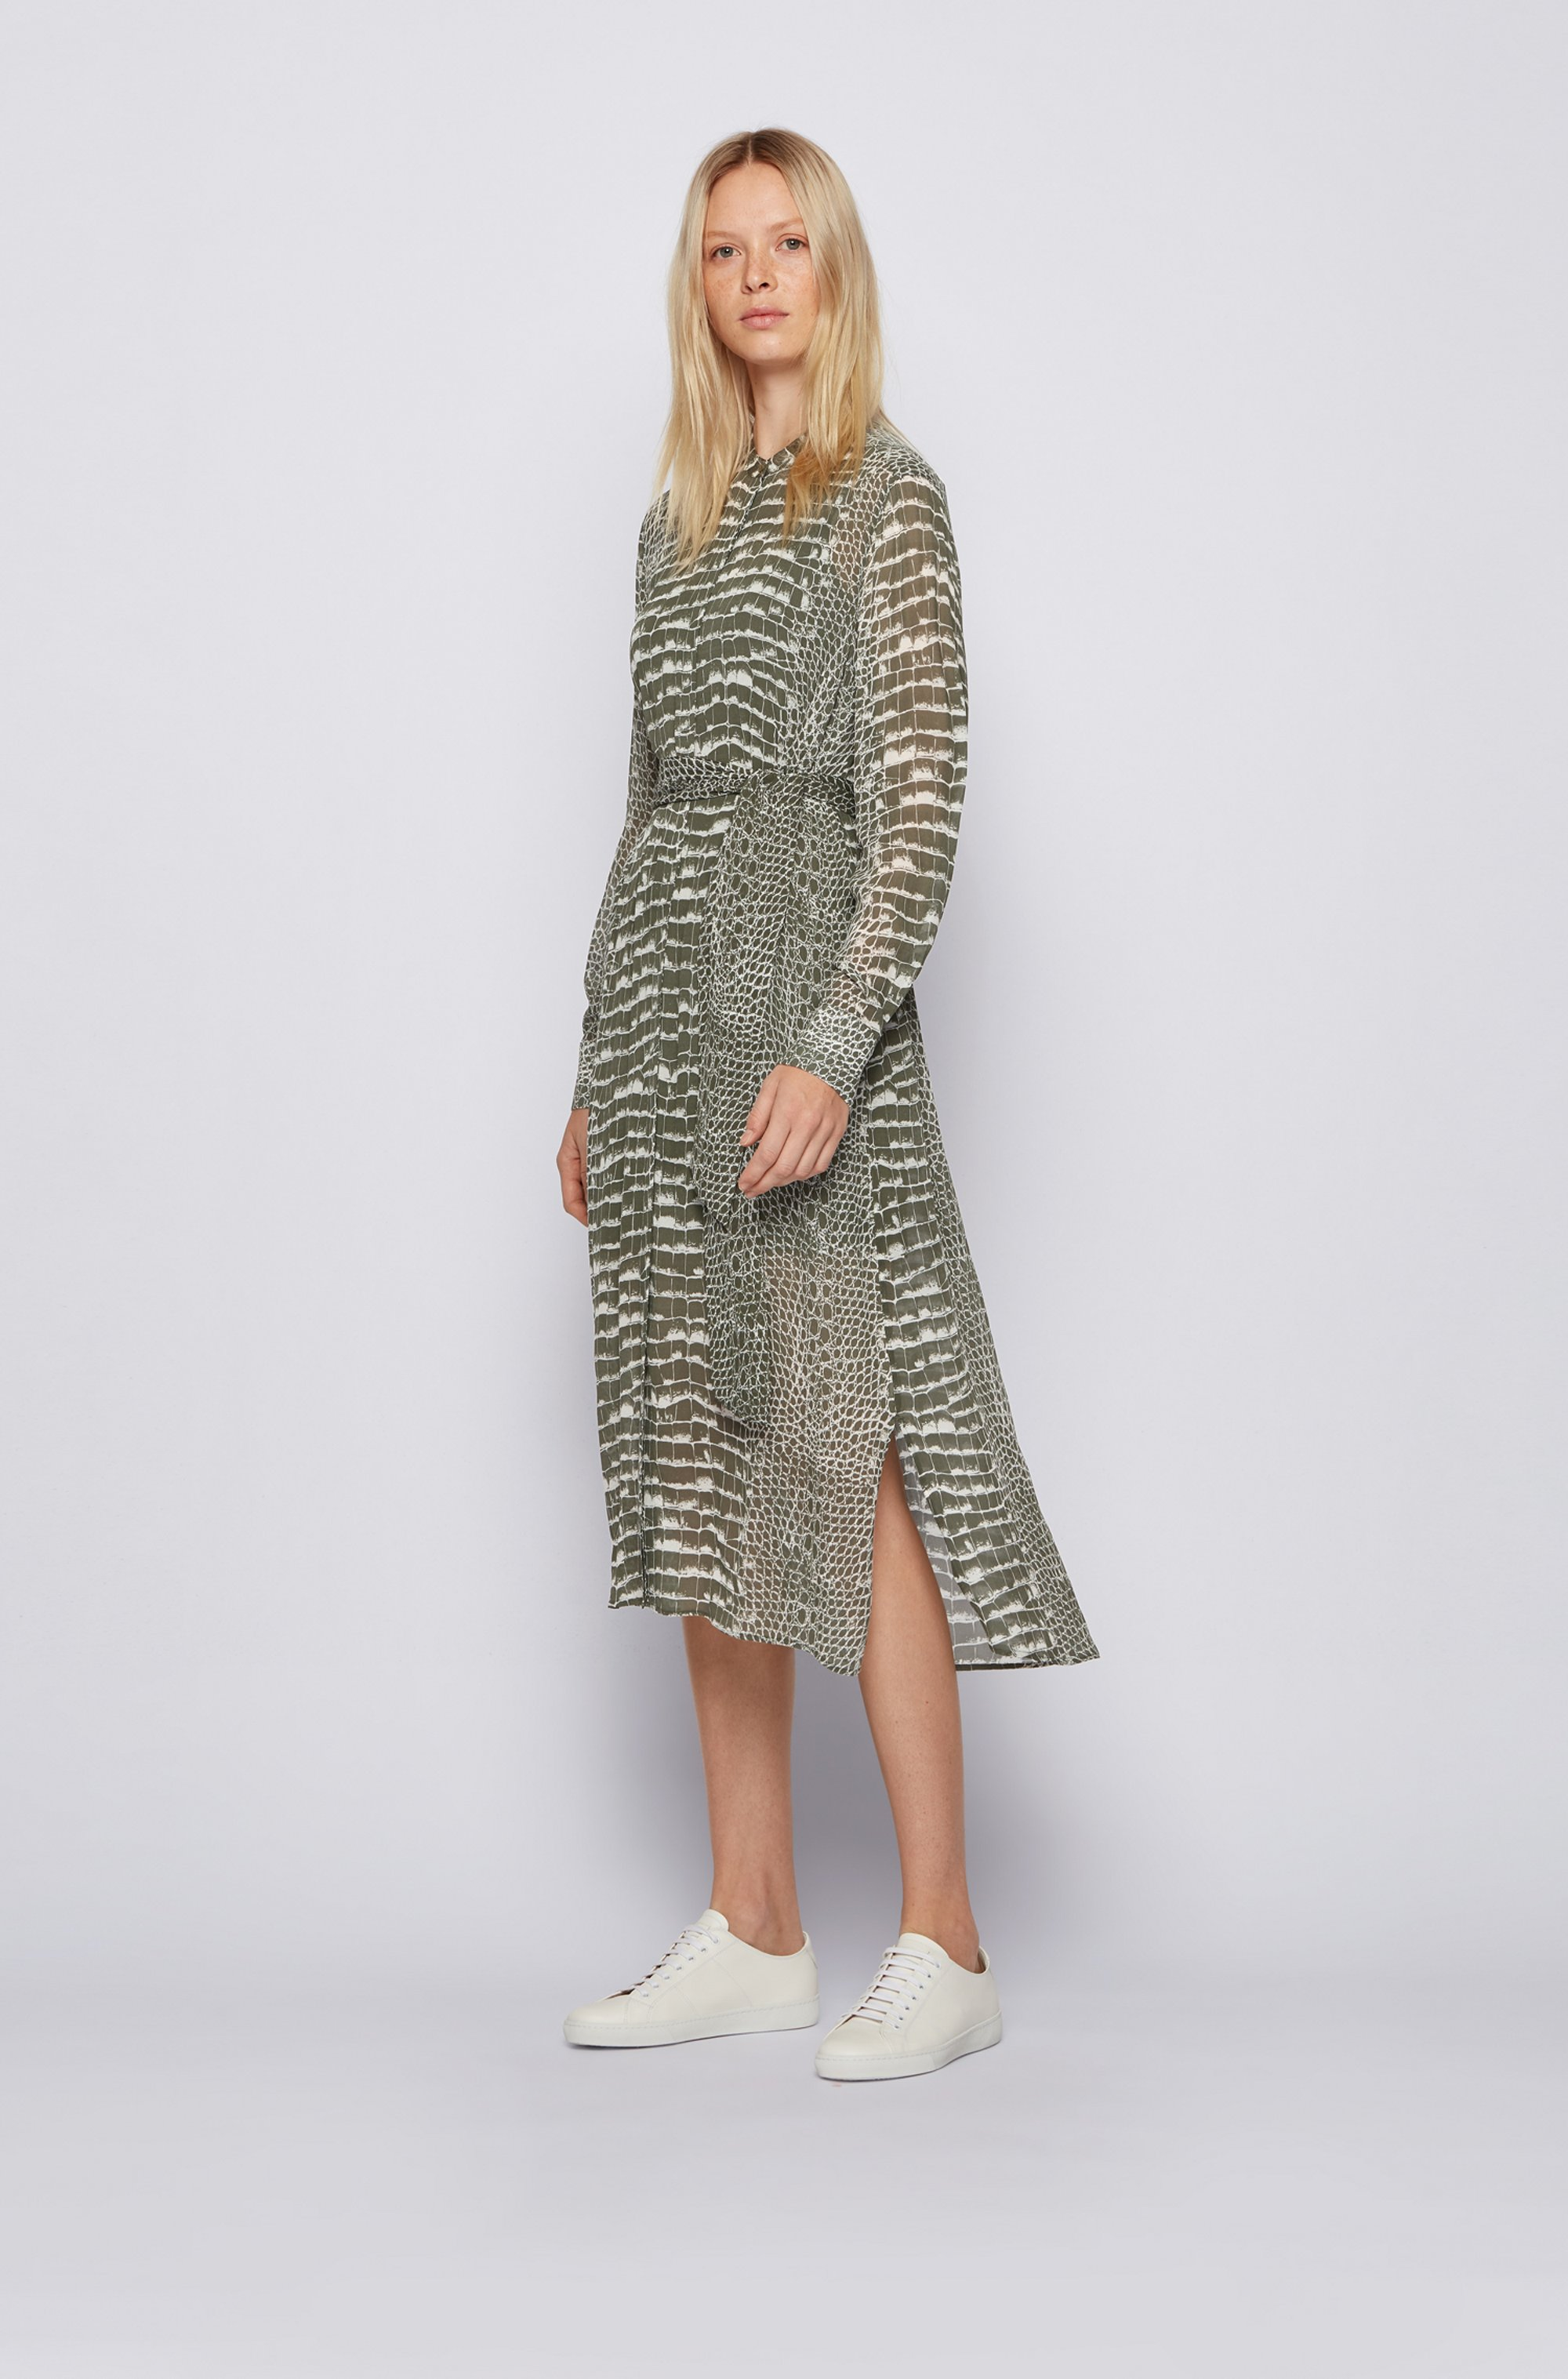 Crocodile-print shirt dress in lightweight canvas